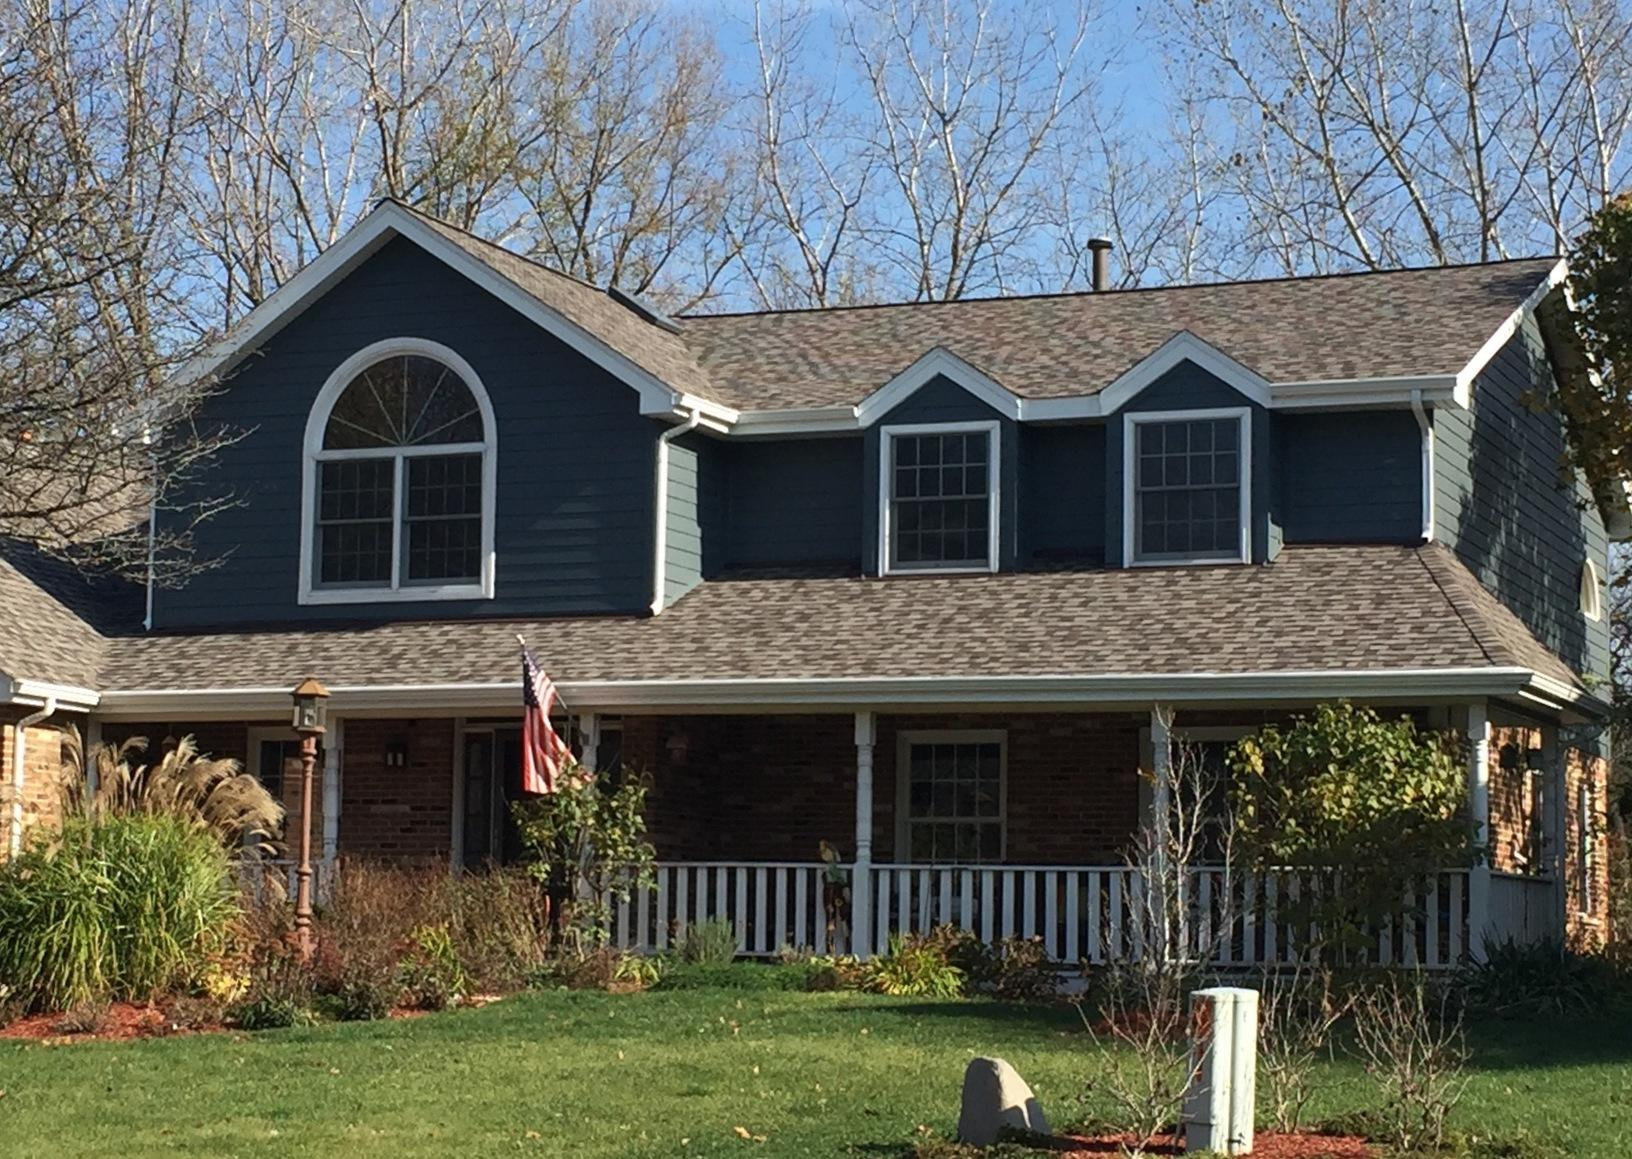 Siding, Roof Replacement, & Velux Skylight project in Orland Park IL - After Photo